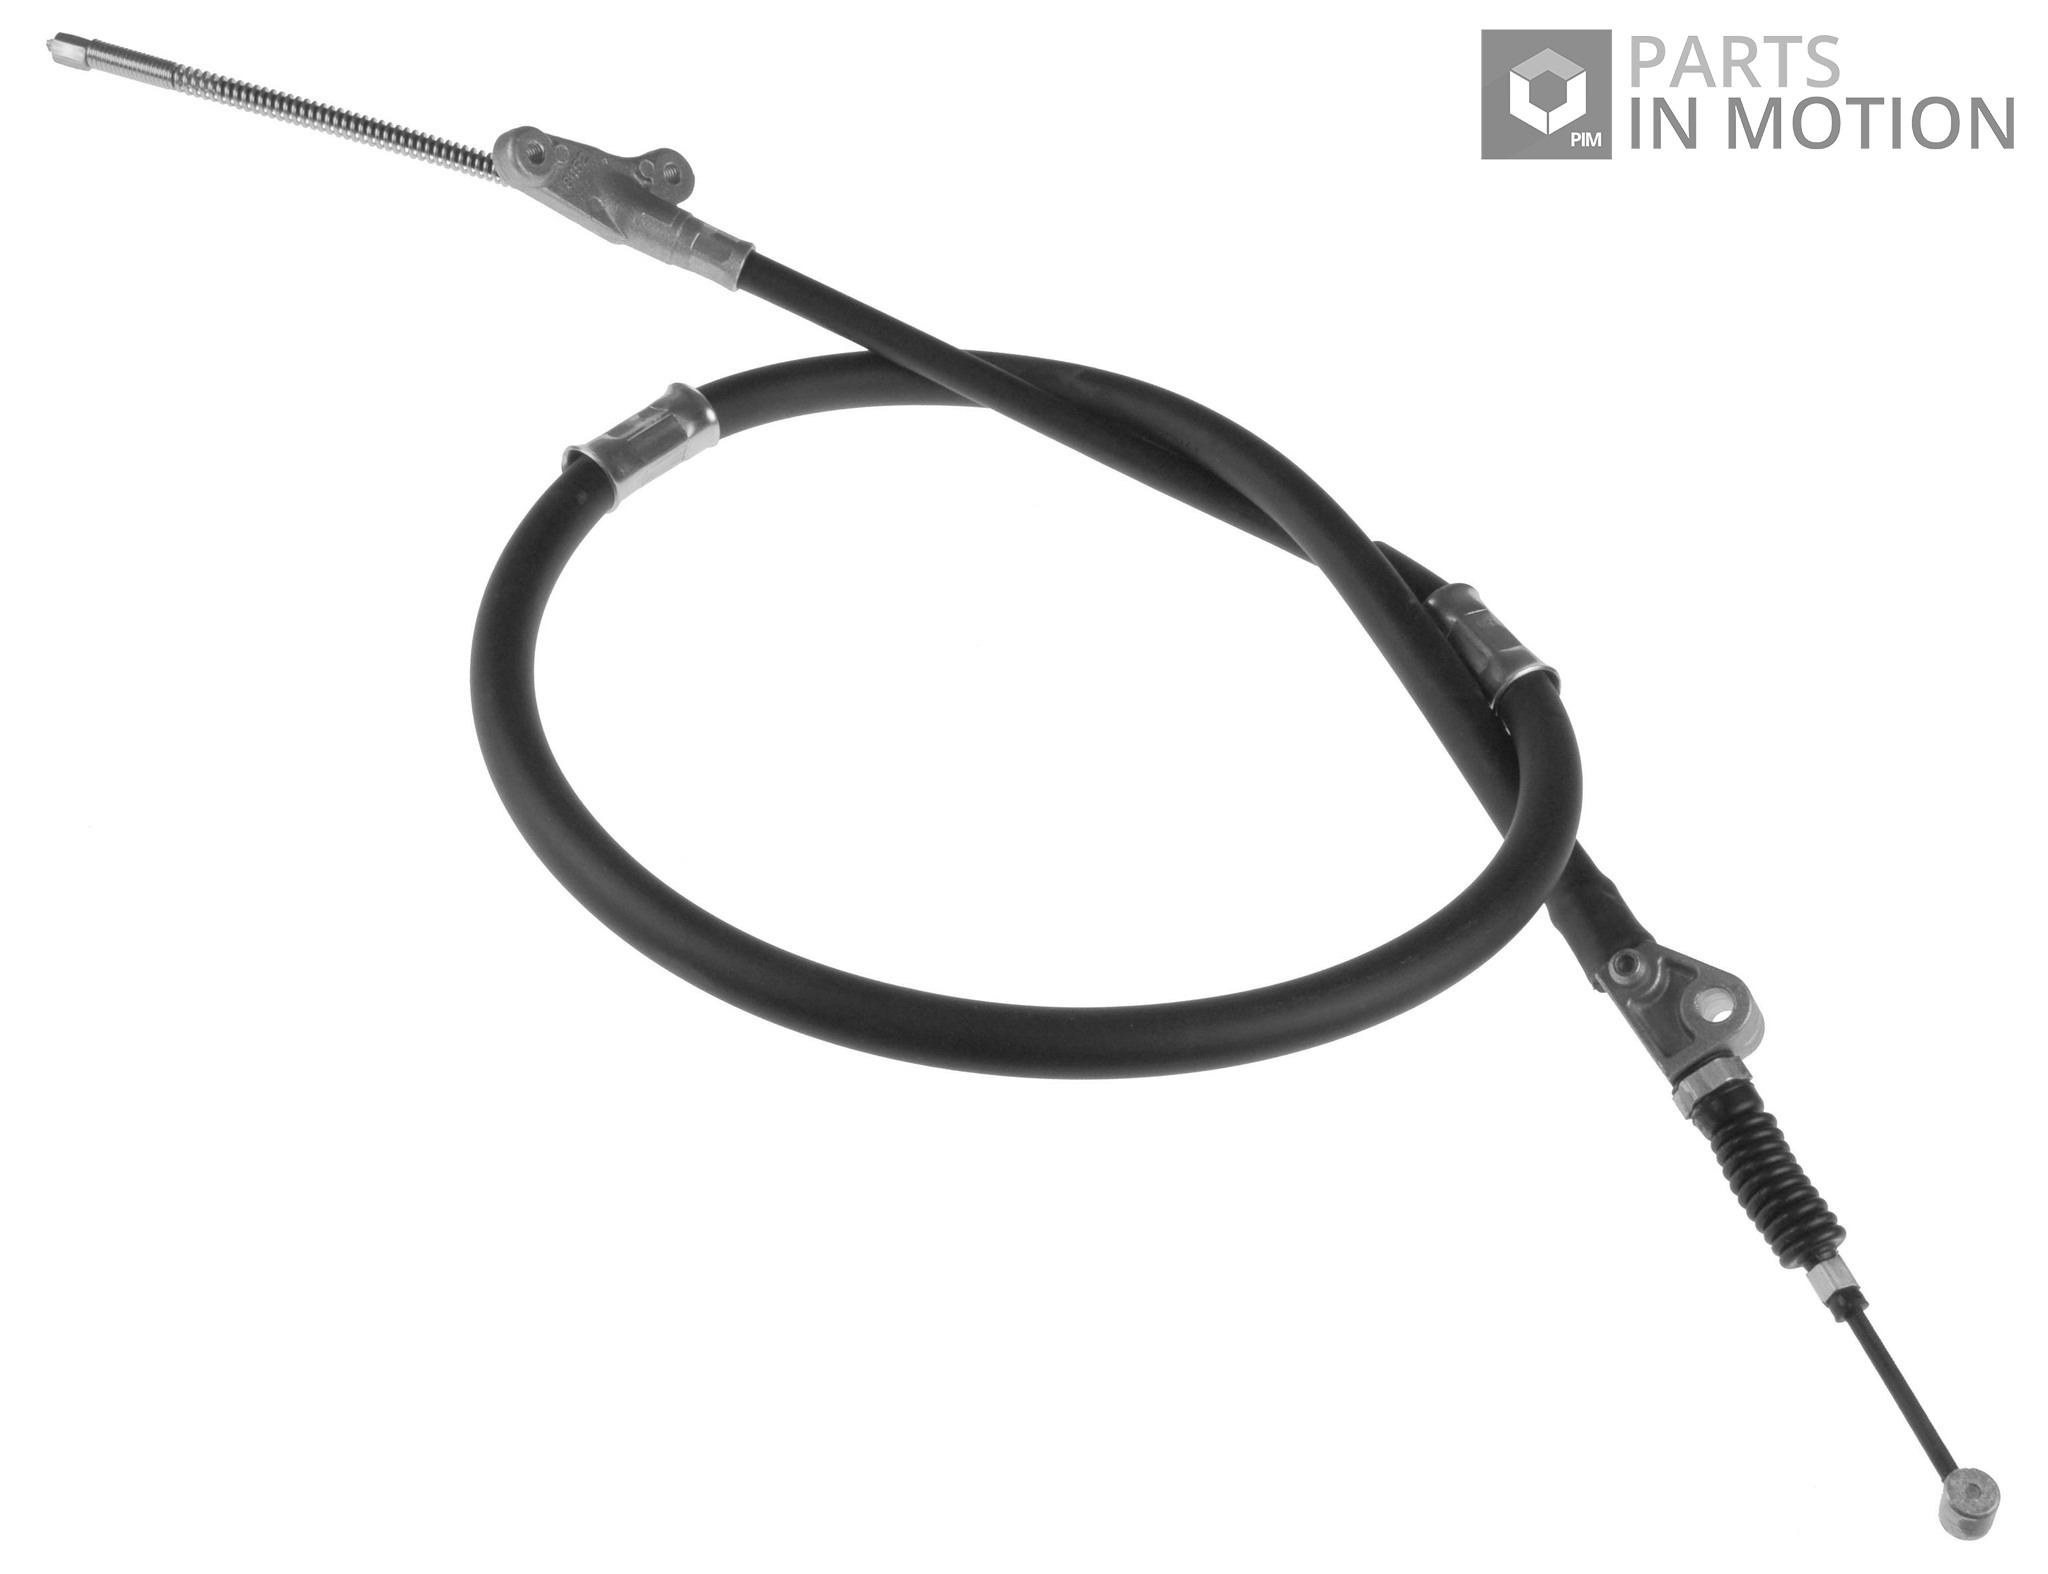 Handbrake Cable Fits Toyota Previa 2 4 Rear Left 00 To 06 Adt Hand Brake